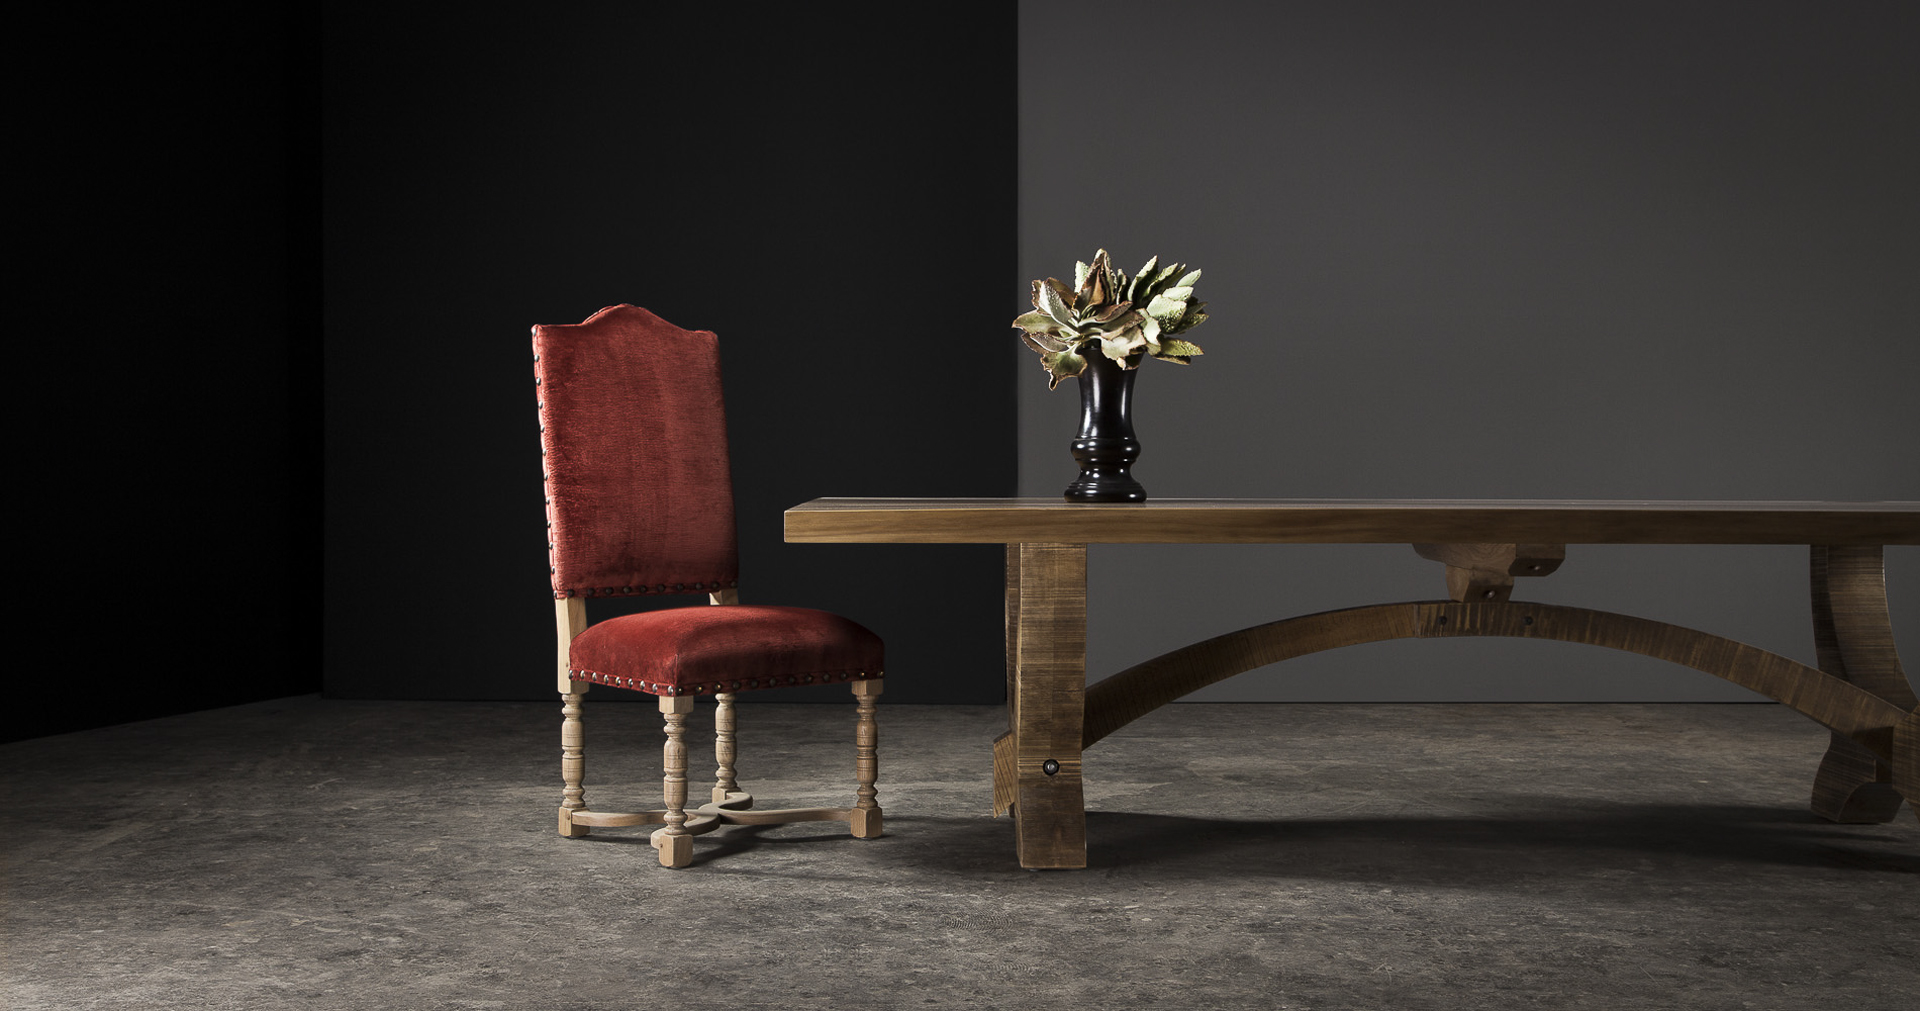 Solid wood heritage furniture by Pierre Cronje